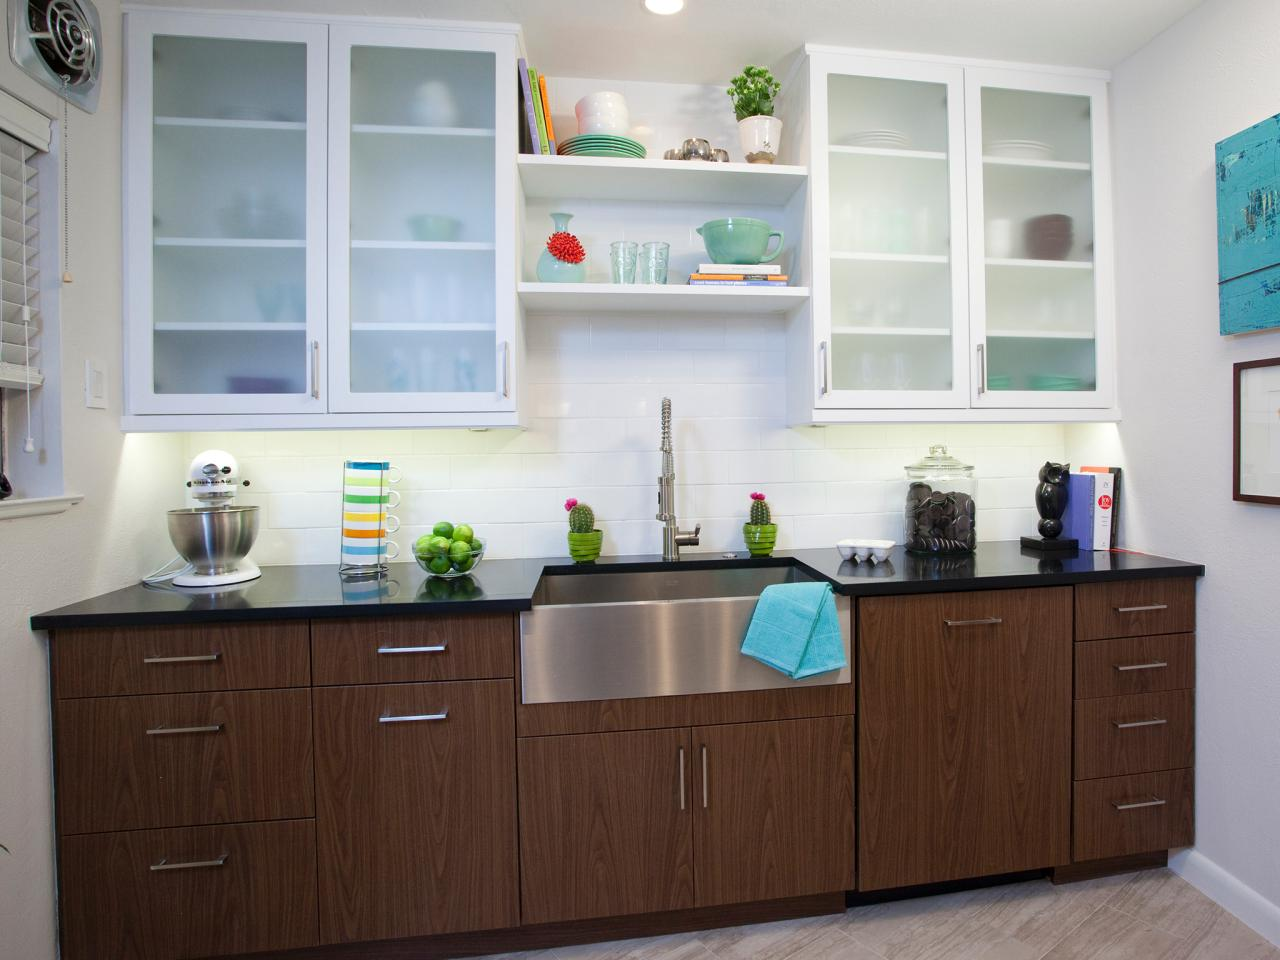 Awesome laminate kitchen cabinets cream color country style kitchen lpznejl